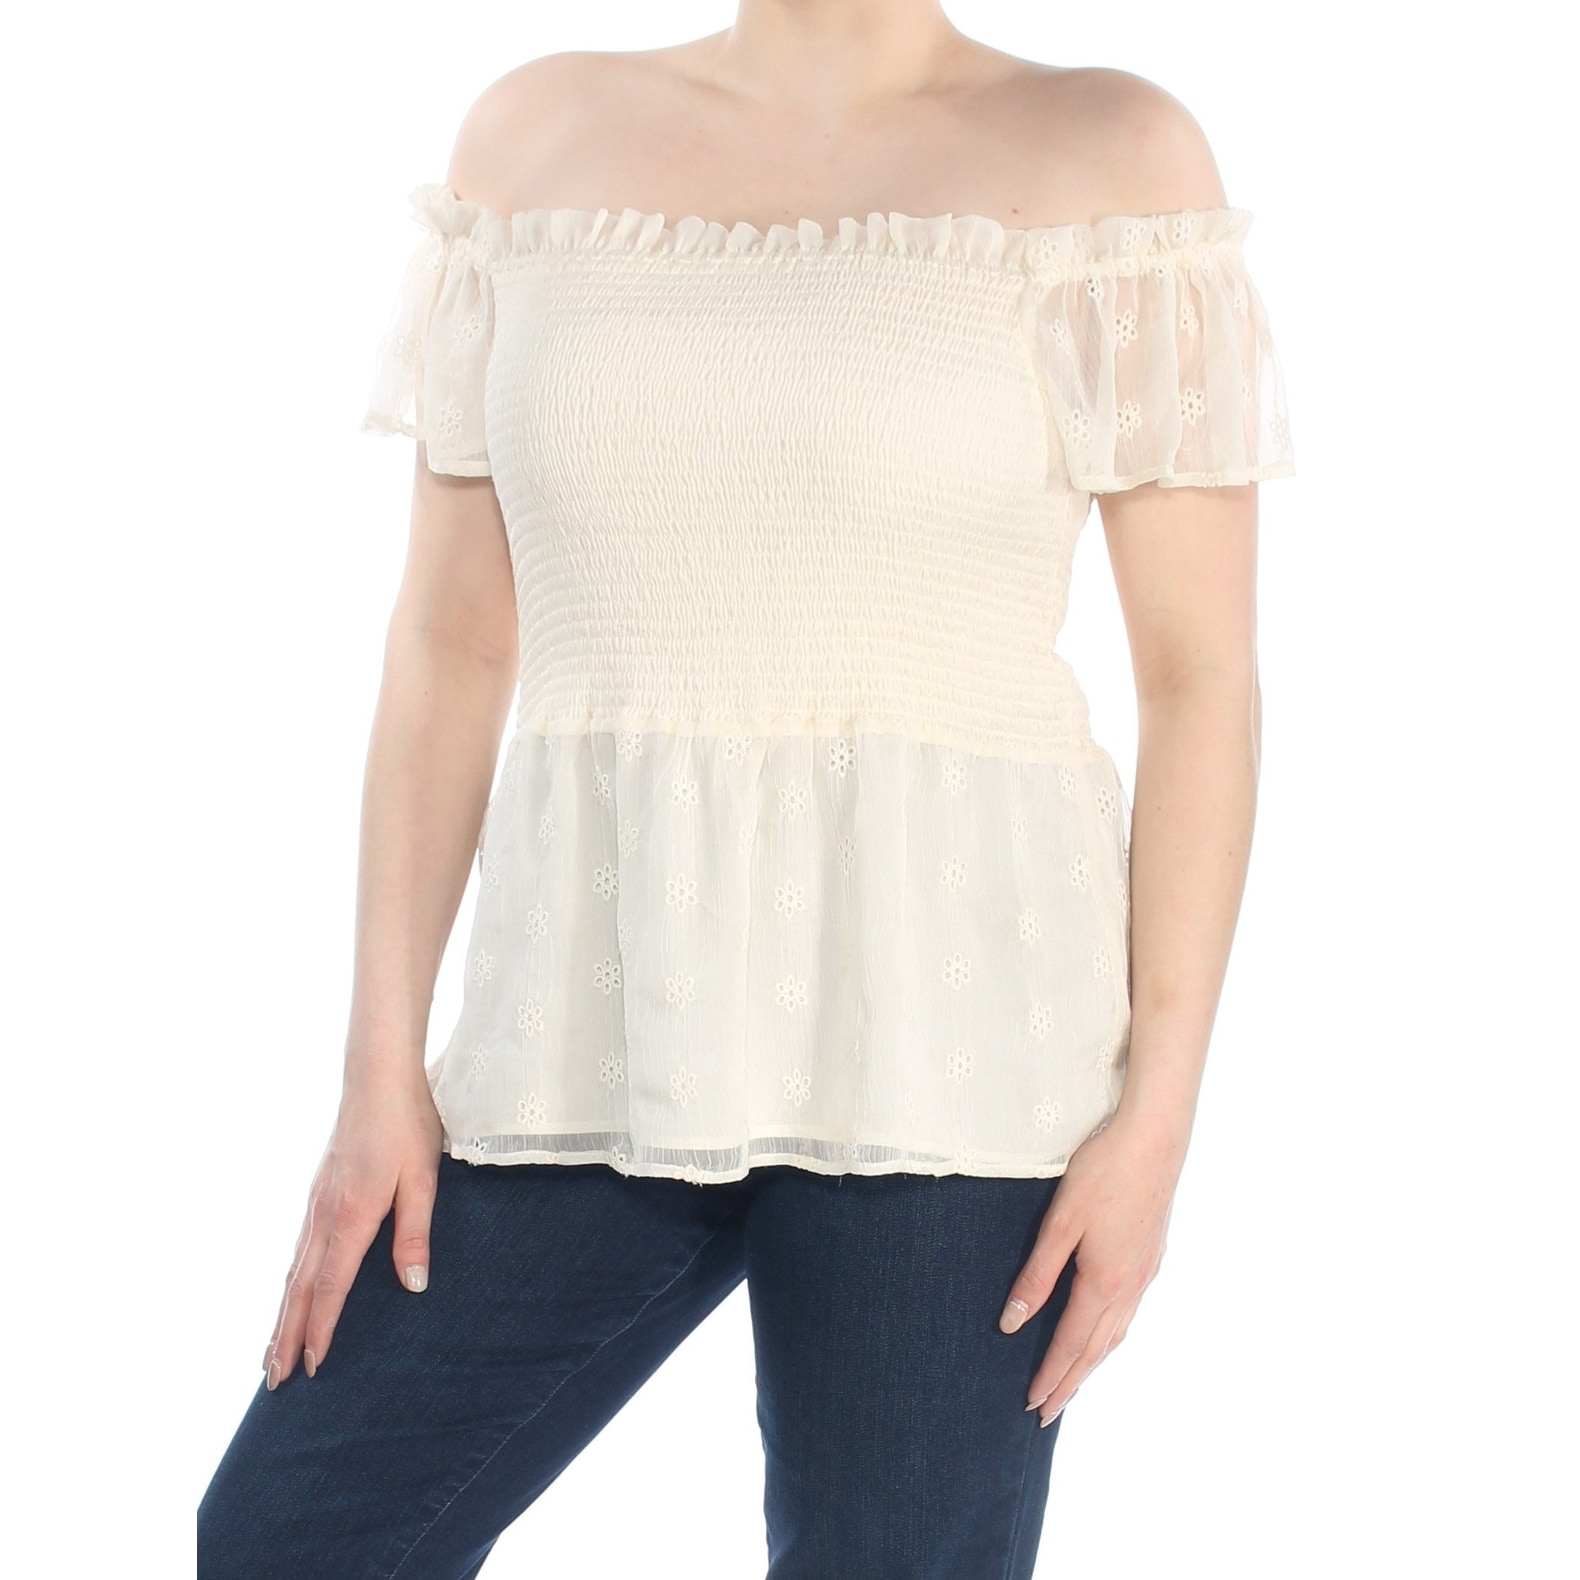 94a0f4bef2c959 Buy Vince Camuto Short Sleeve Shirts Online at Overstock